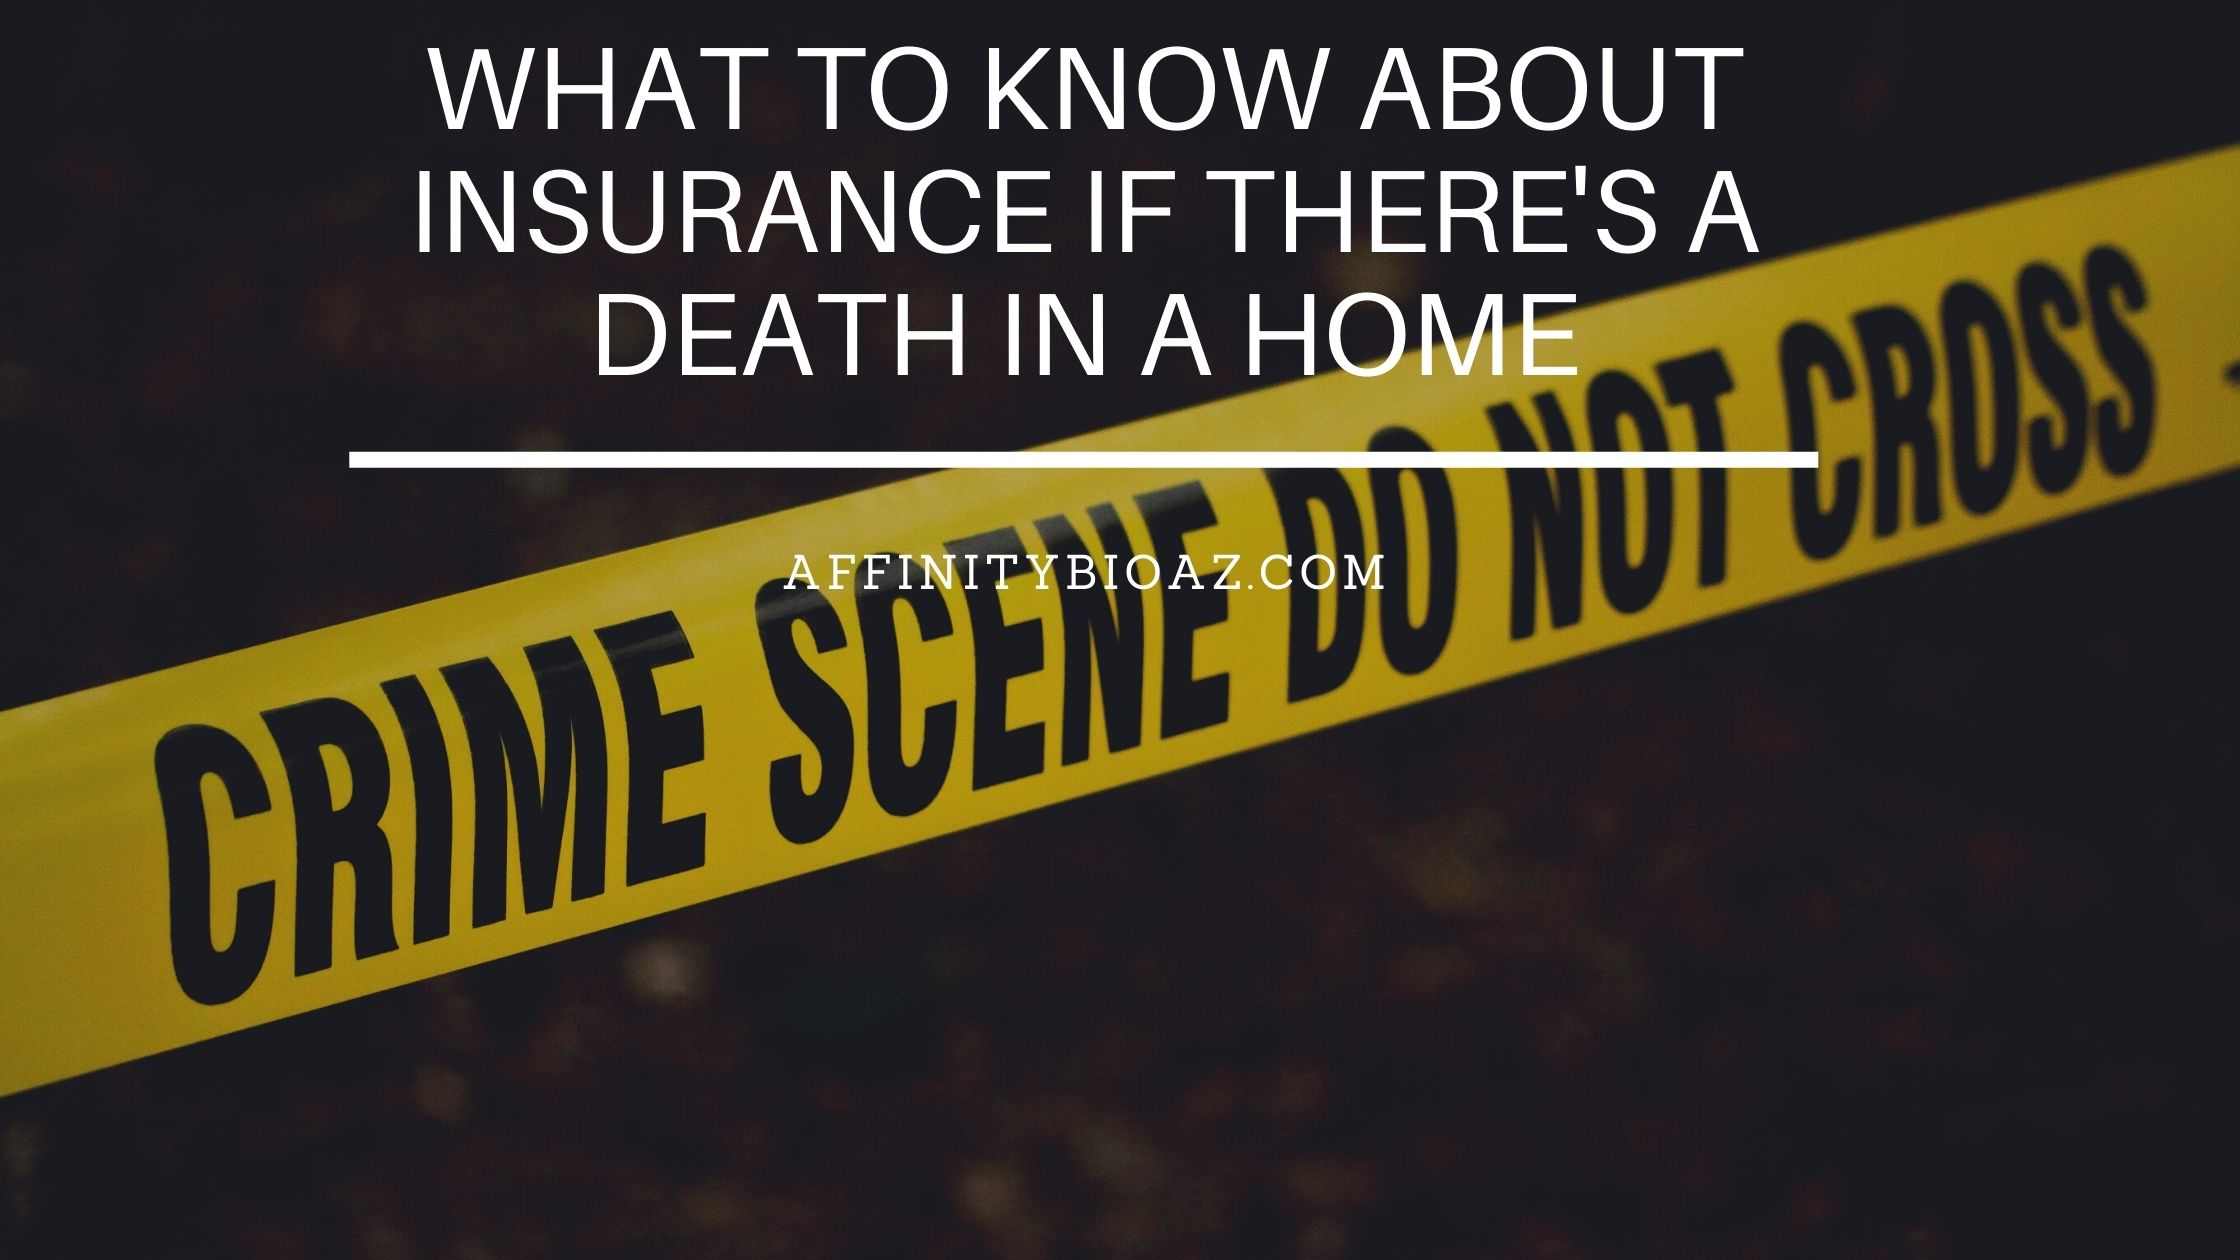 What to Know About Insurance if There's a Death in a Home